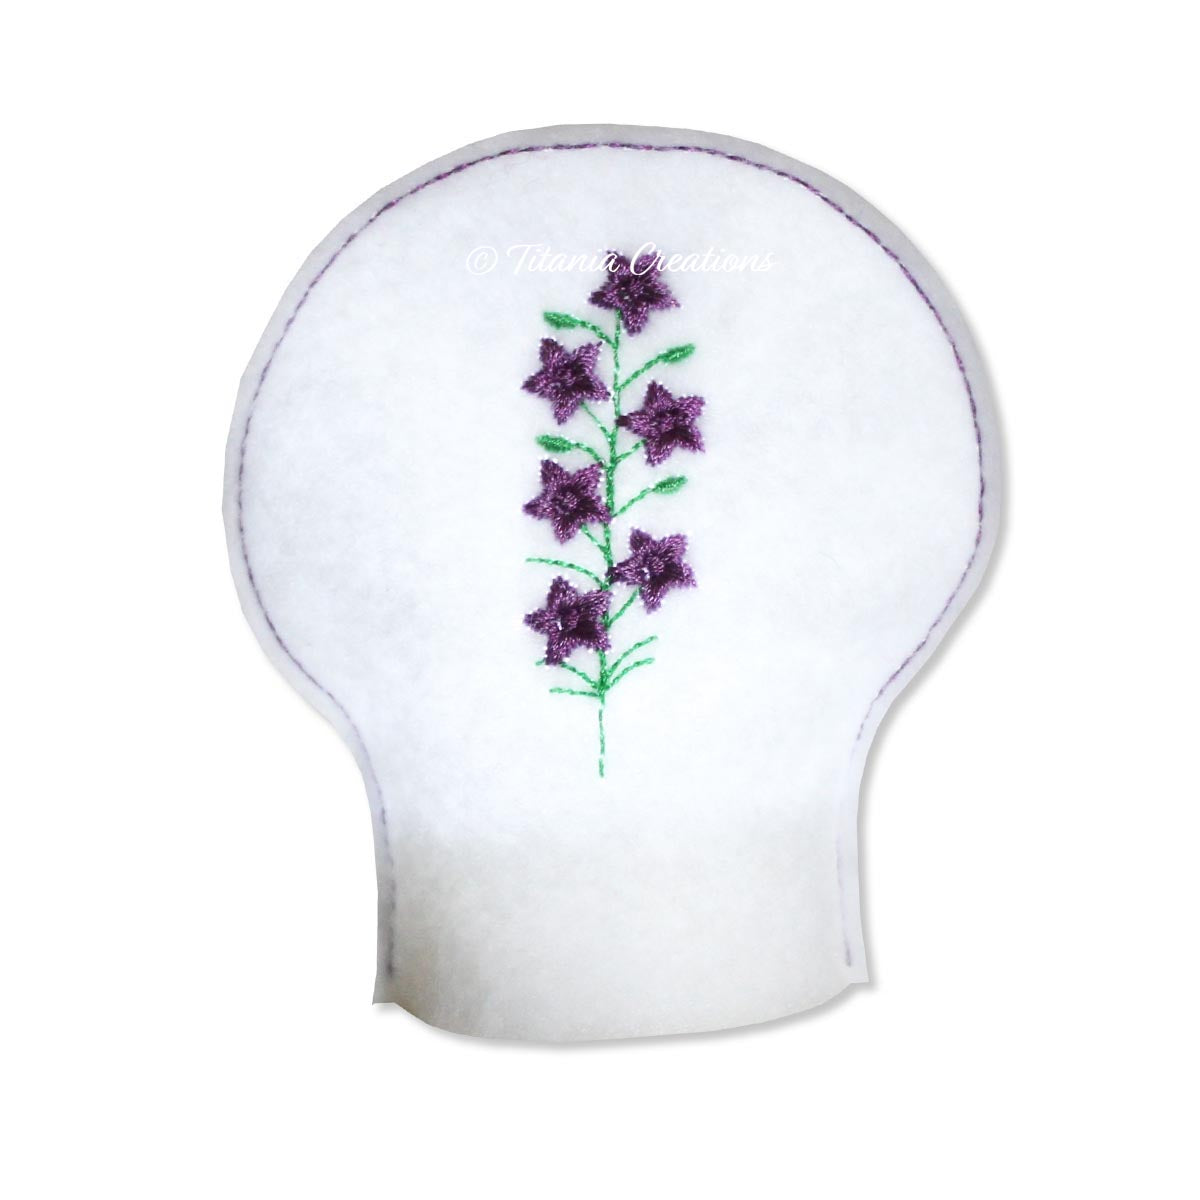 ITH Larkspur Flower for July Tea Light Cover 4x4